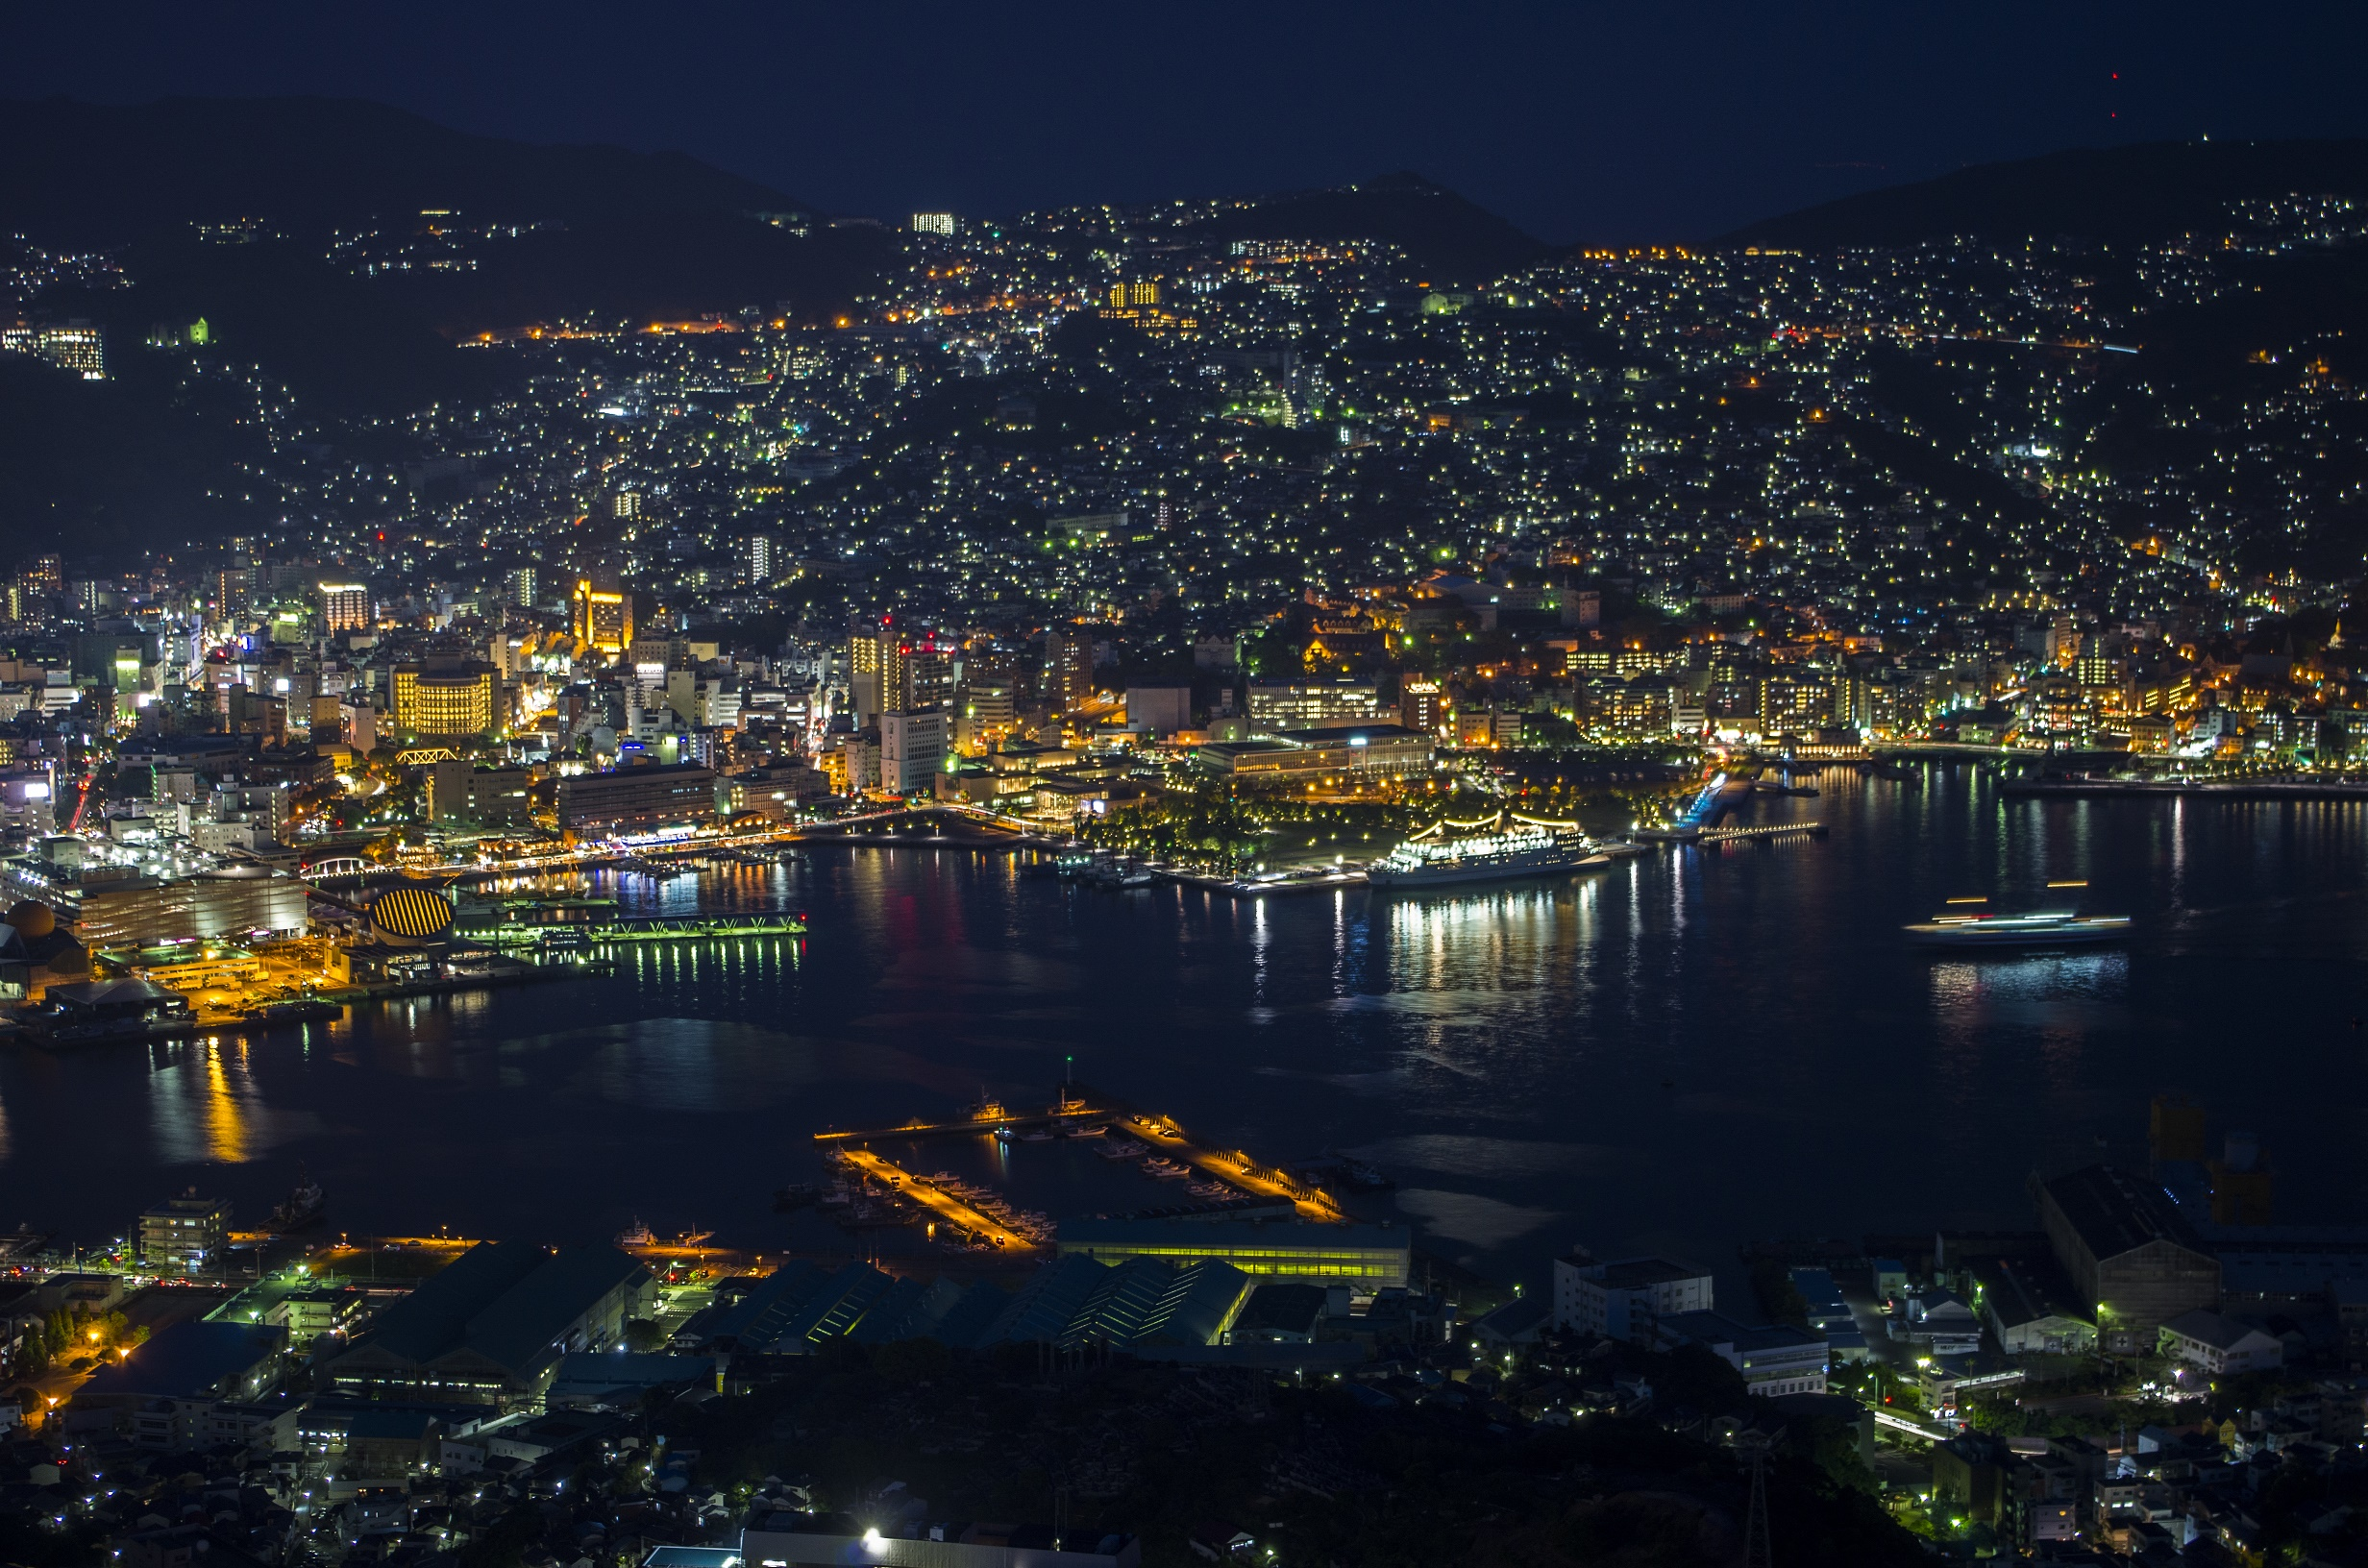 Nagasaki at night